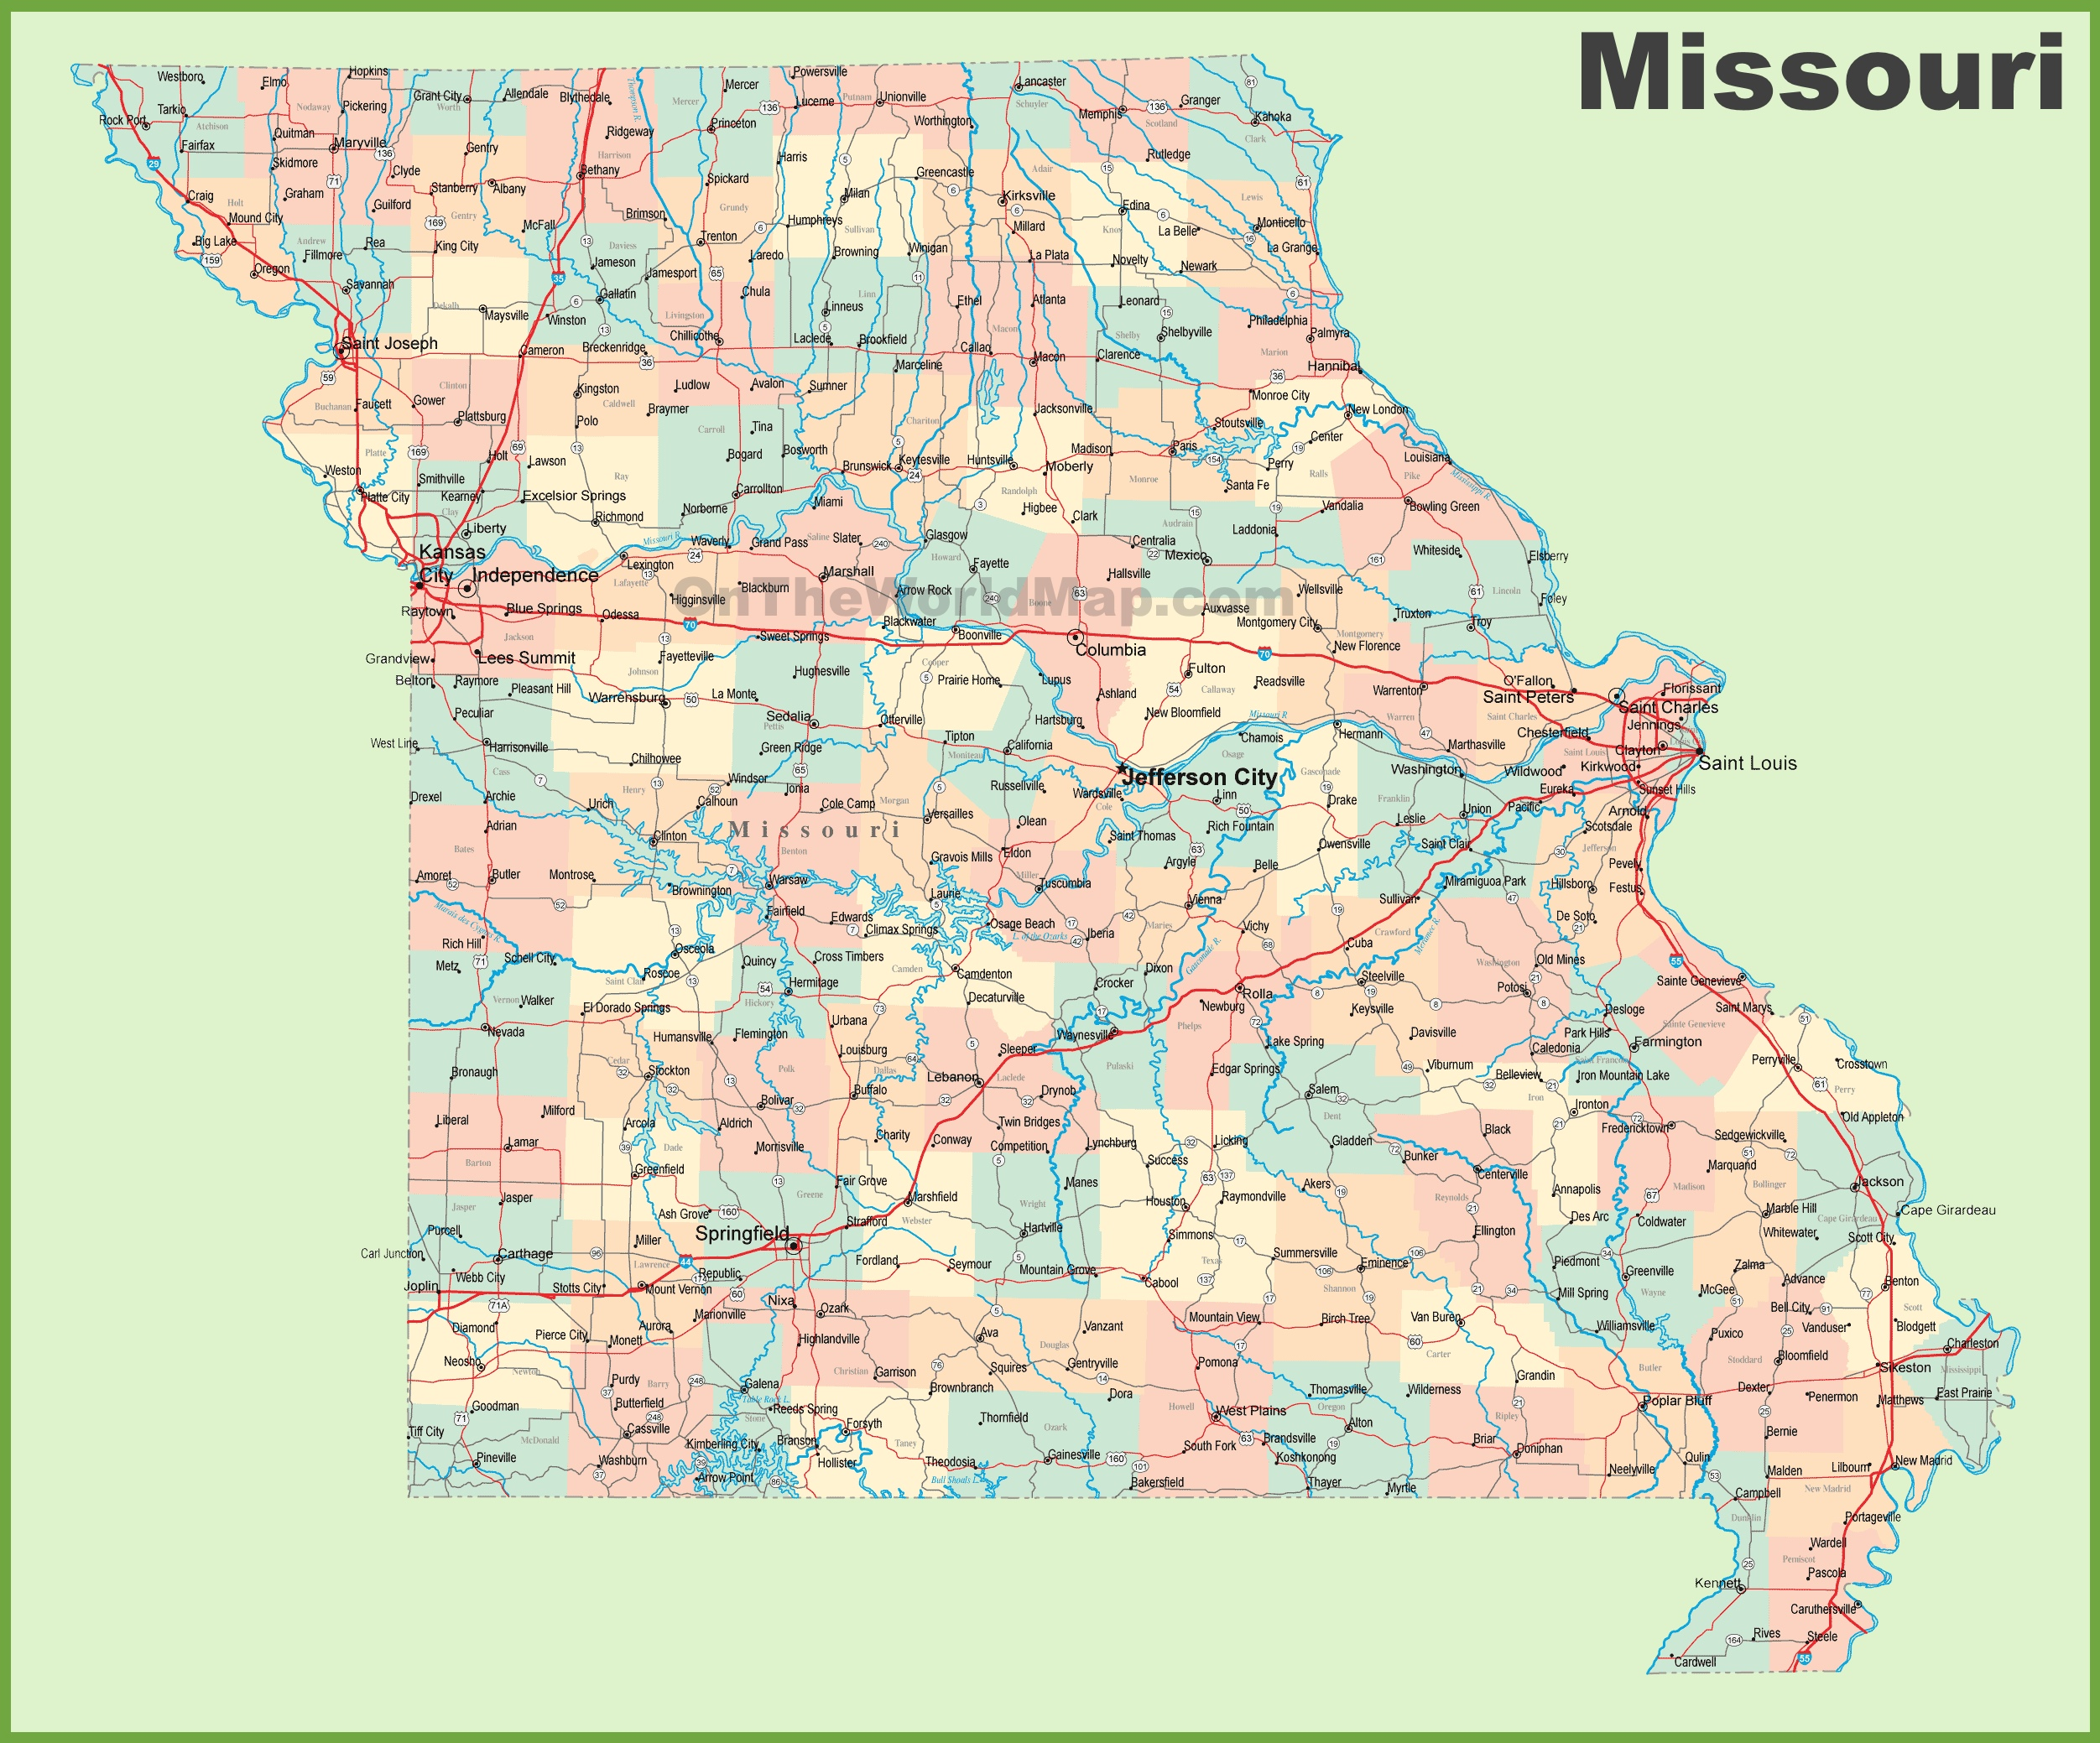 Road Map Of Missouri With Cities - Road map usa